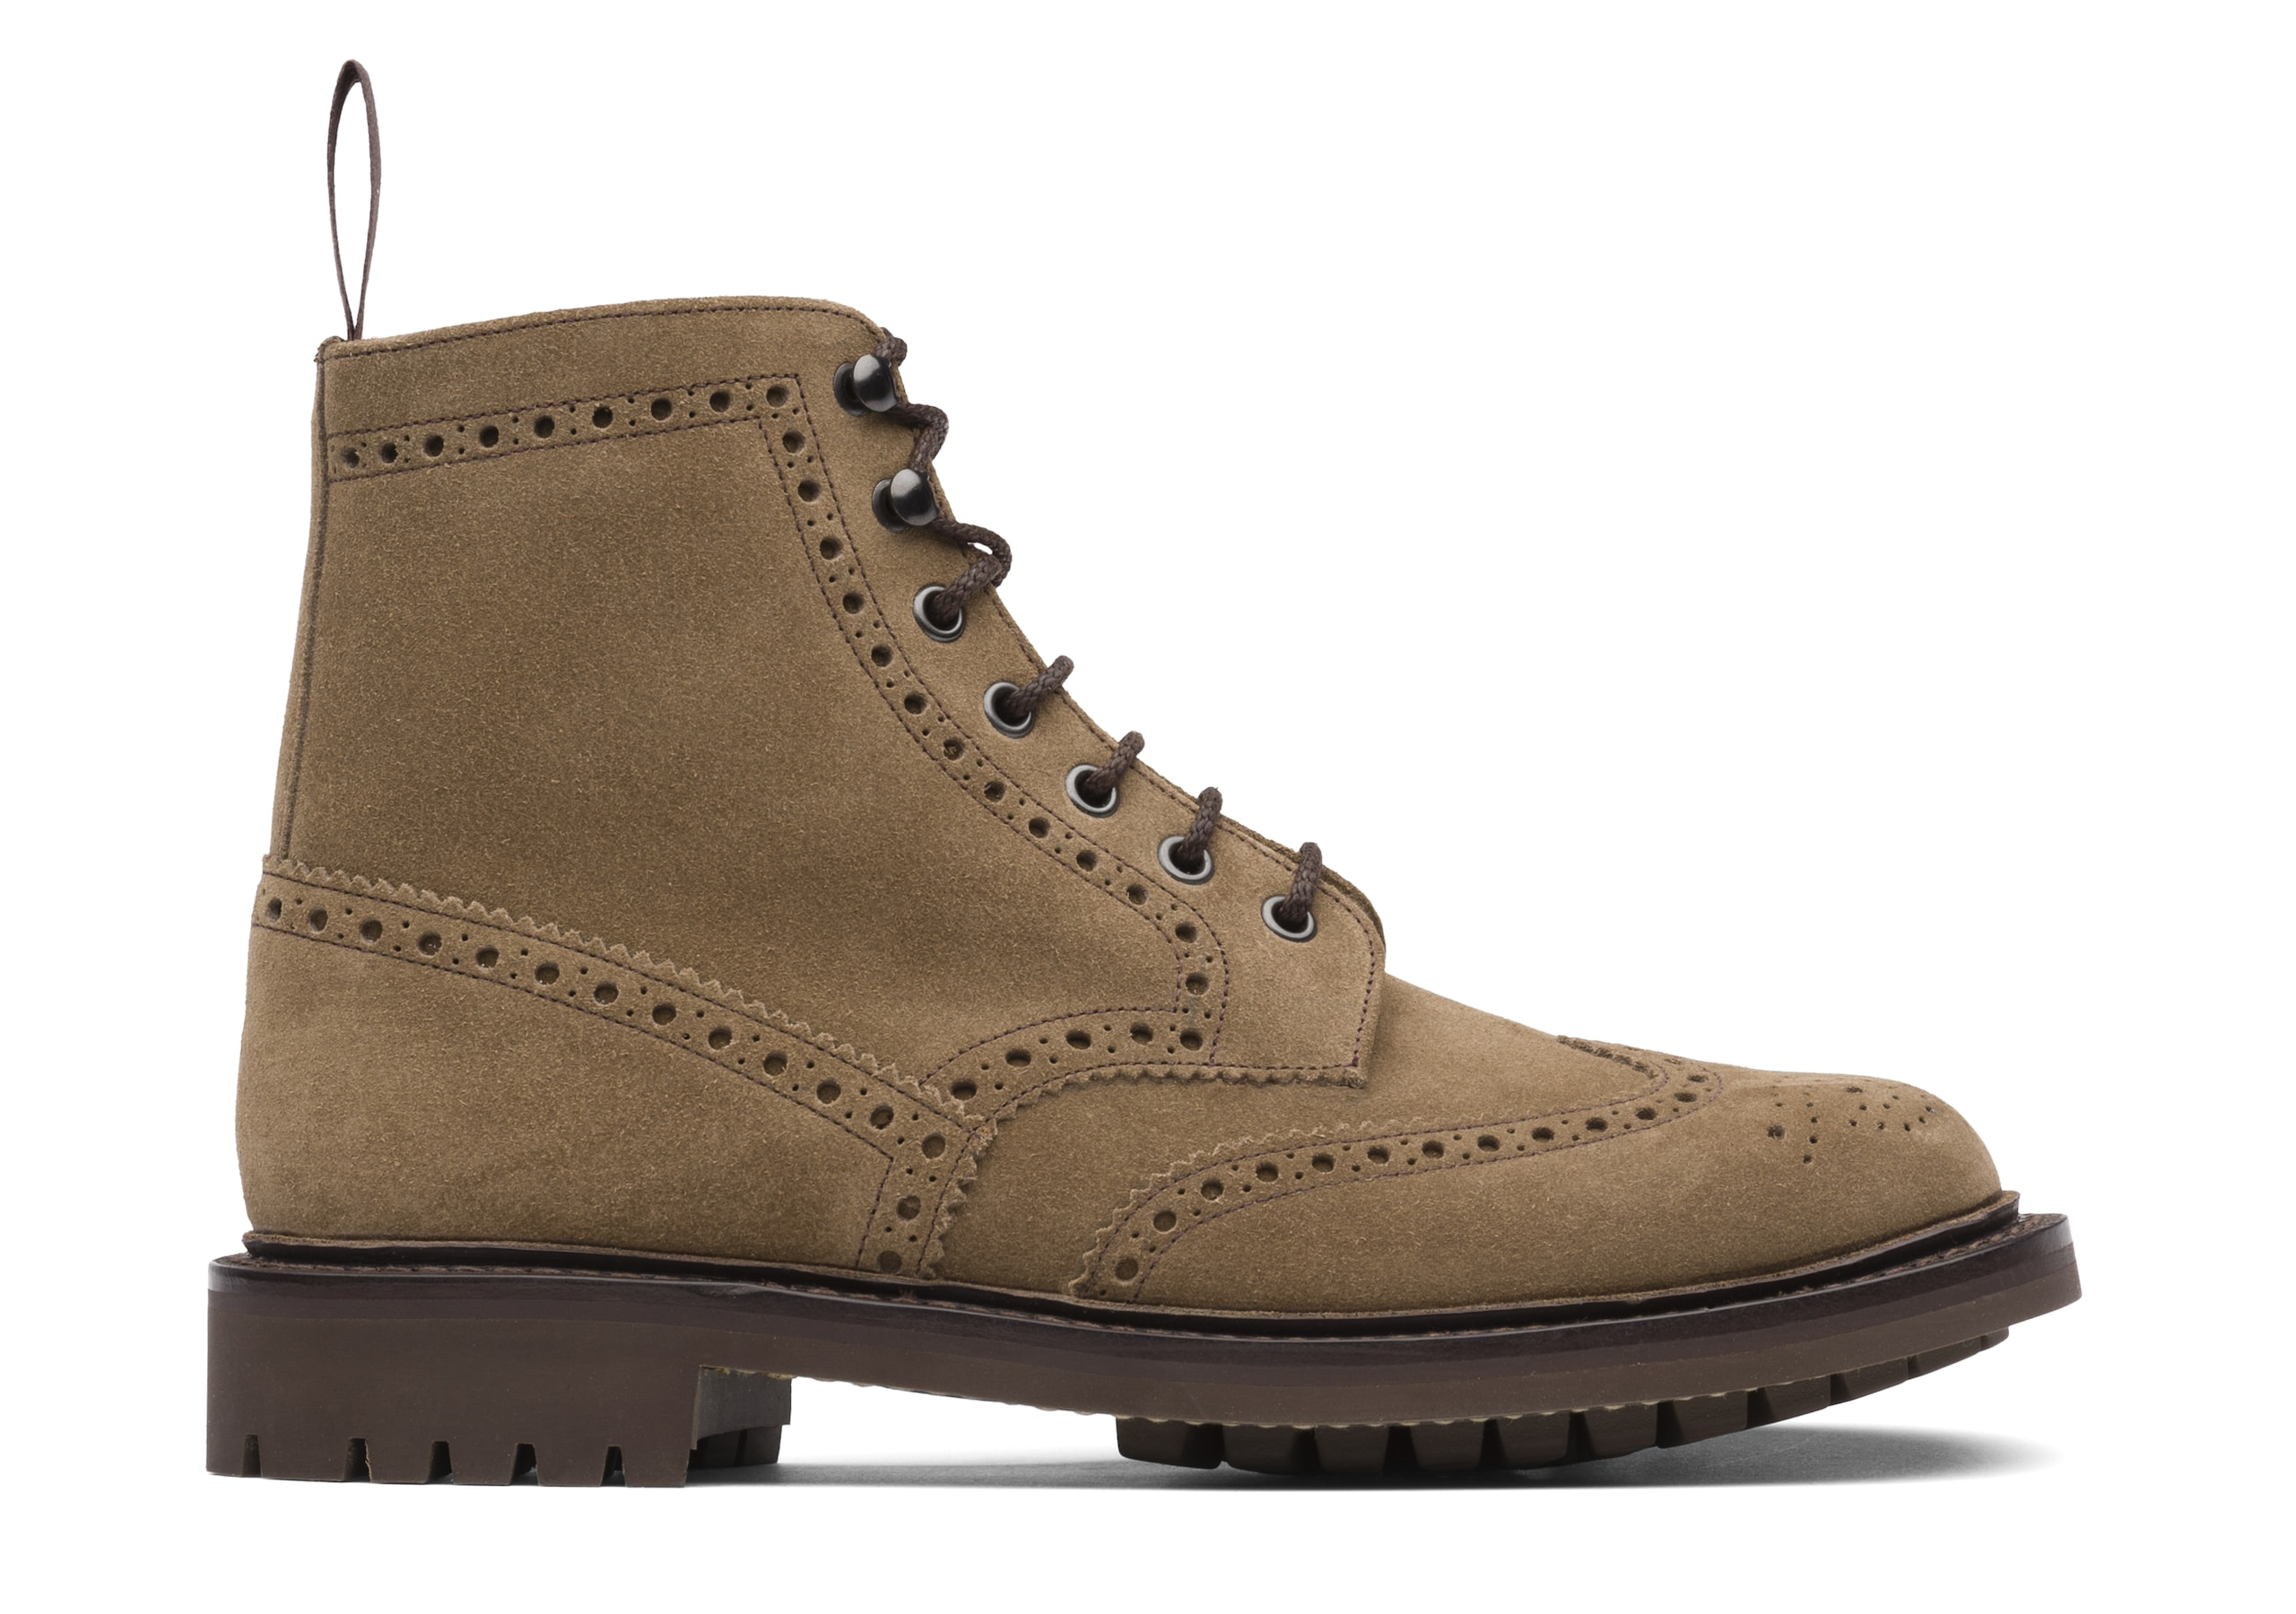 Mac farlane 2 Church's Suede Lace-Up Boot Brogue Neutral